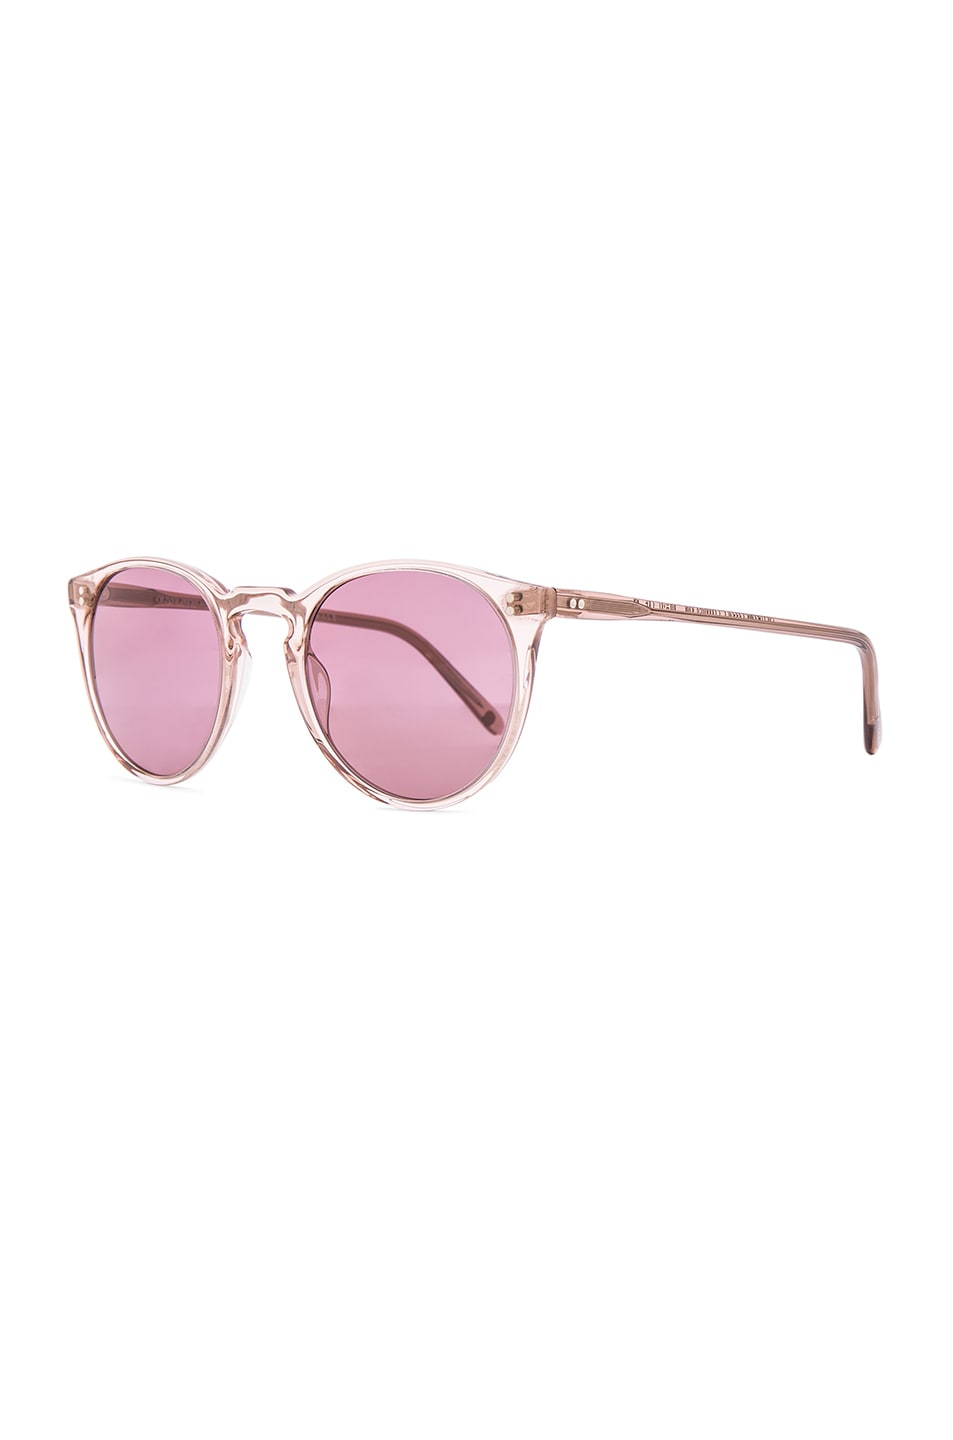 Image 2 of Oliver Peoples The Row O'Malley NYC Sunglasses in Translucent Amber